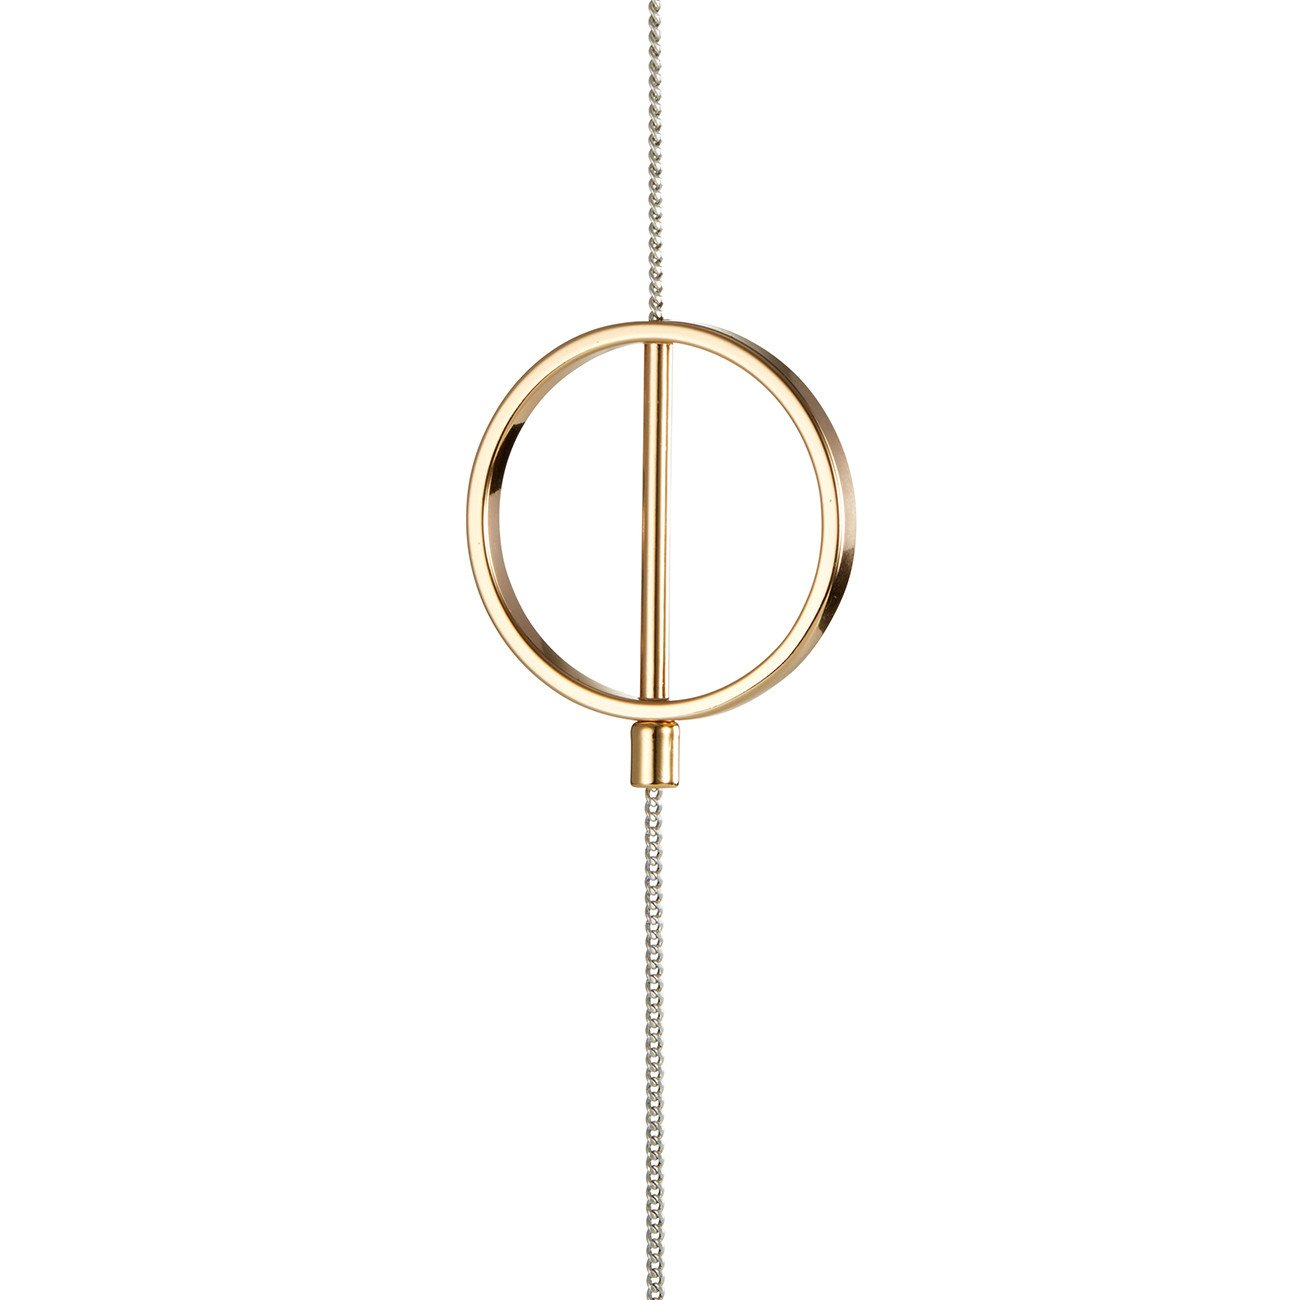 Jenny Bird Rhine Lariat Gold - Outlette Jewelry